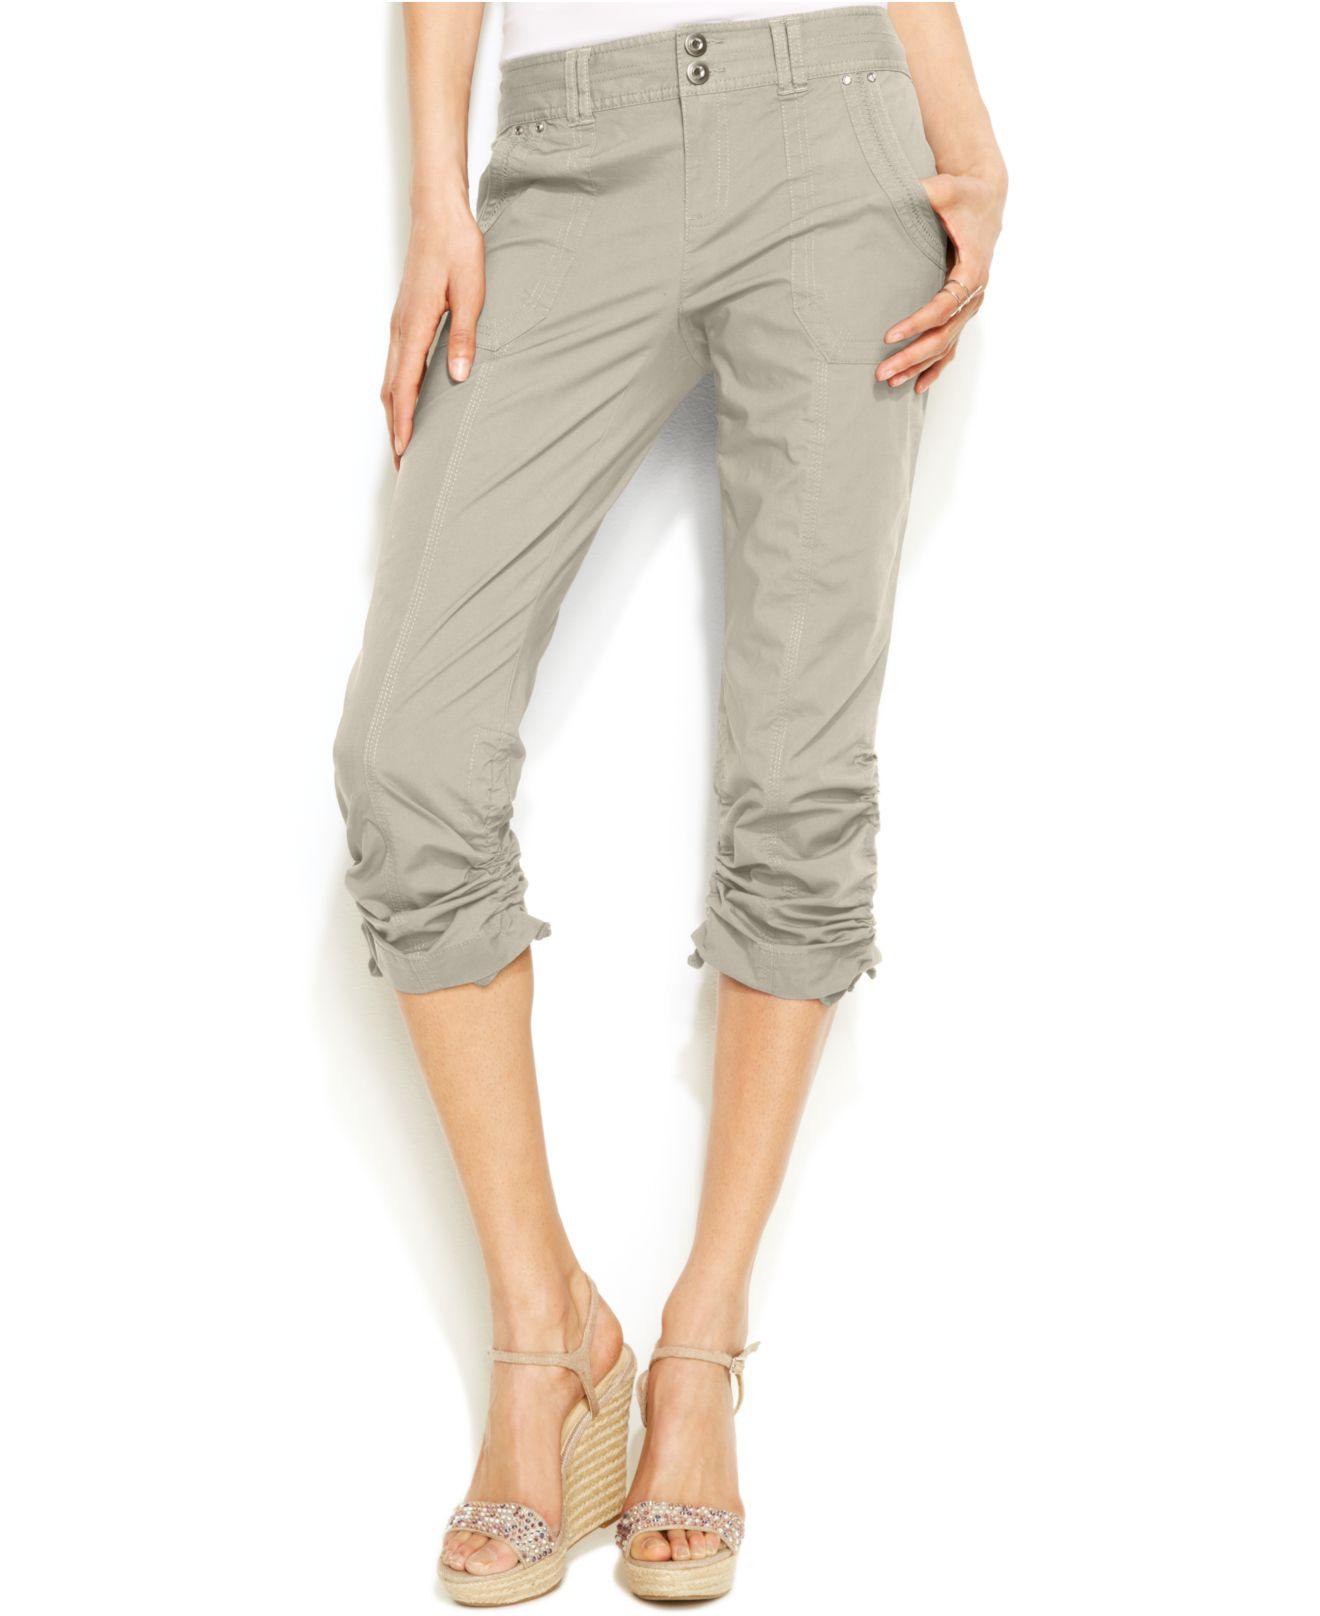 Inc international concepts Ruched Capri Pants in Natural | Lyst